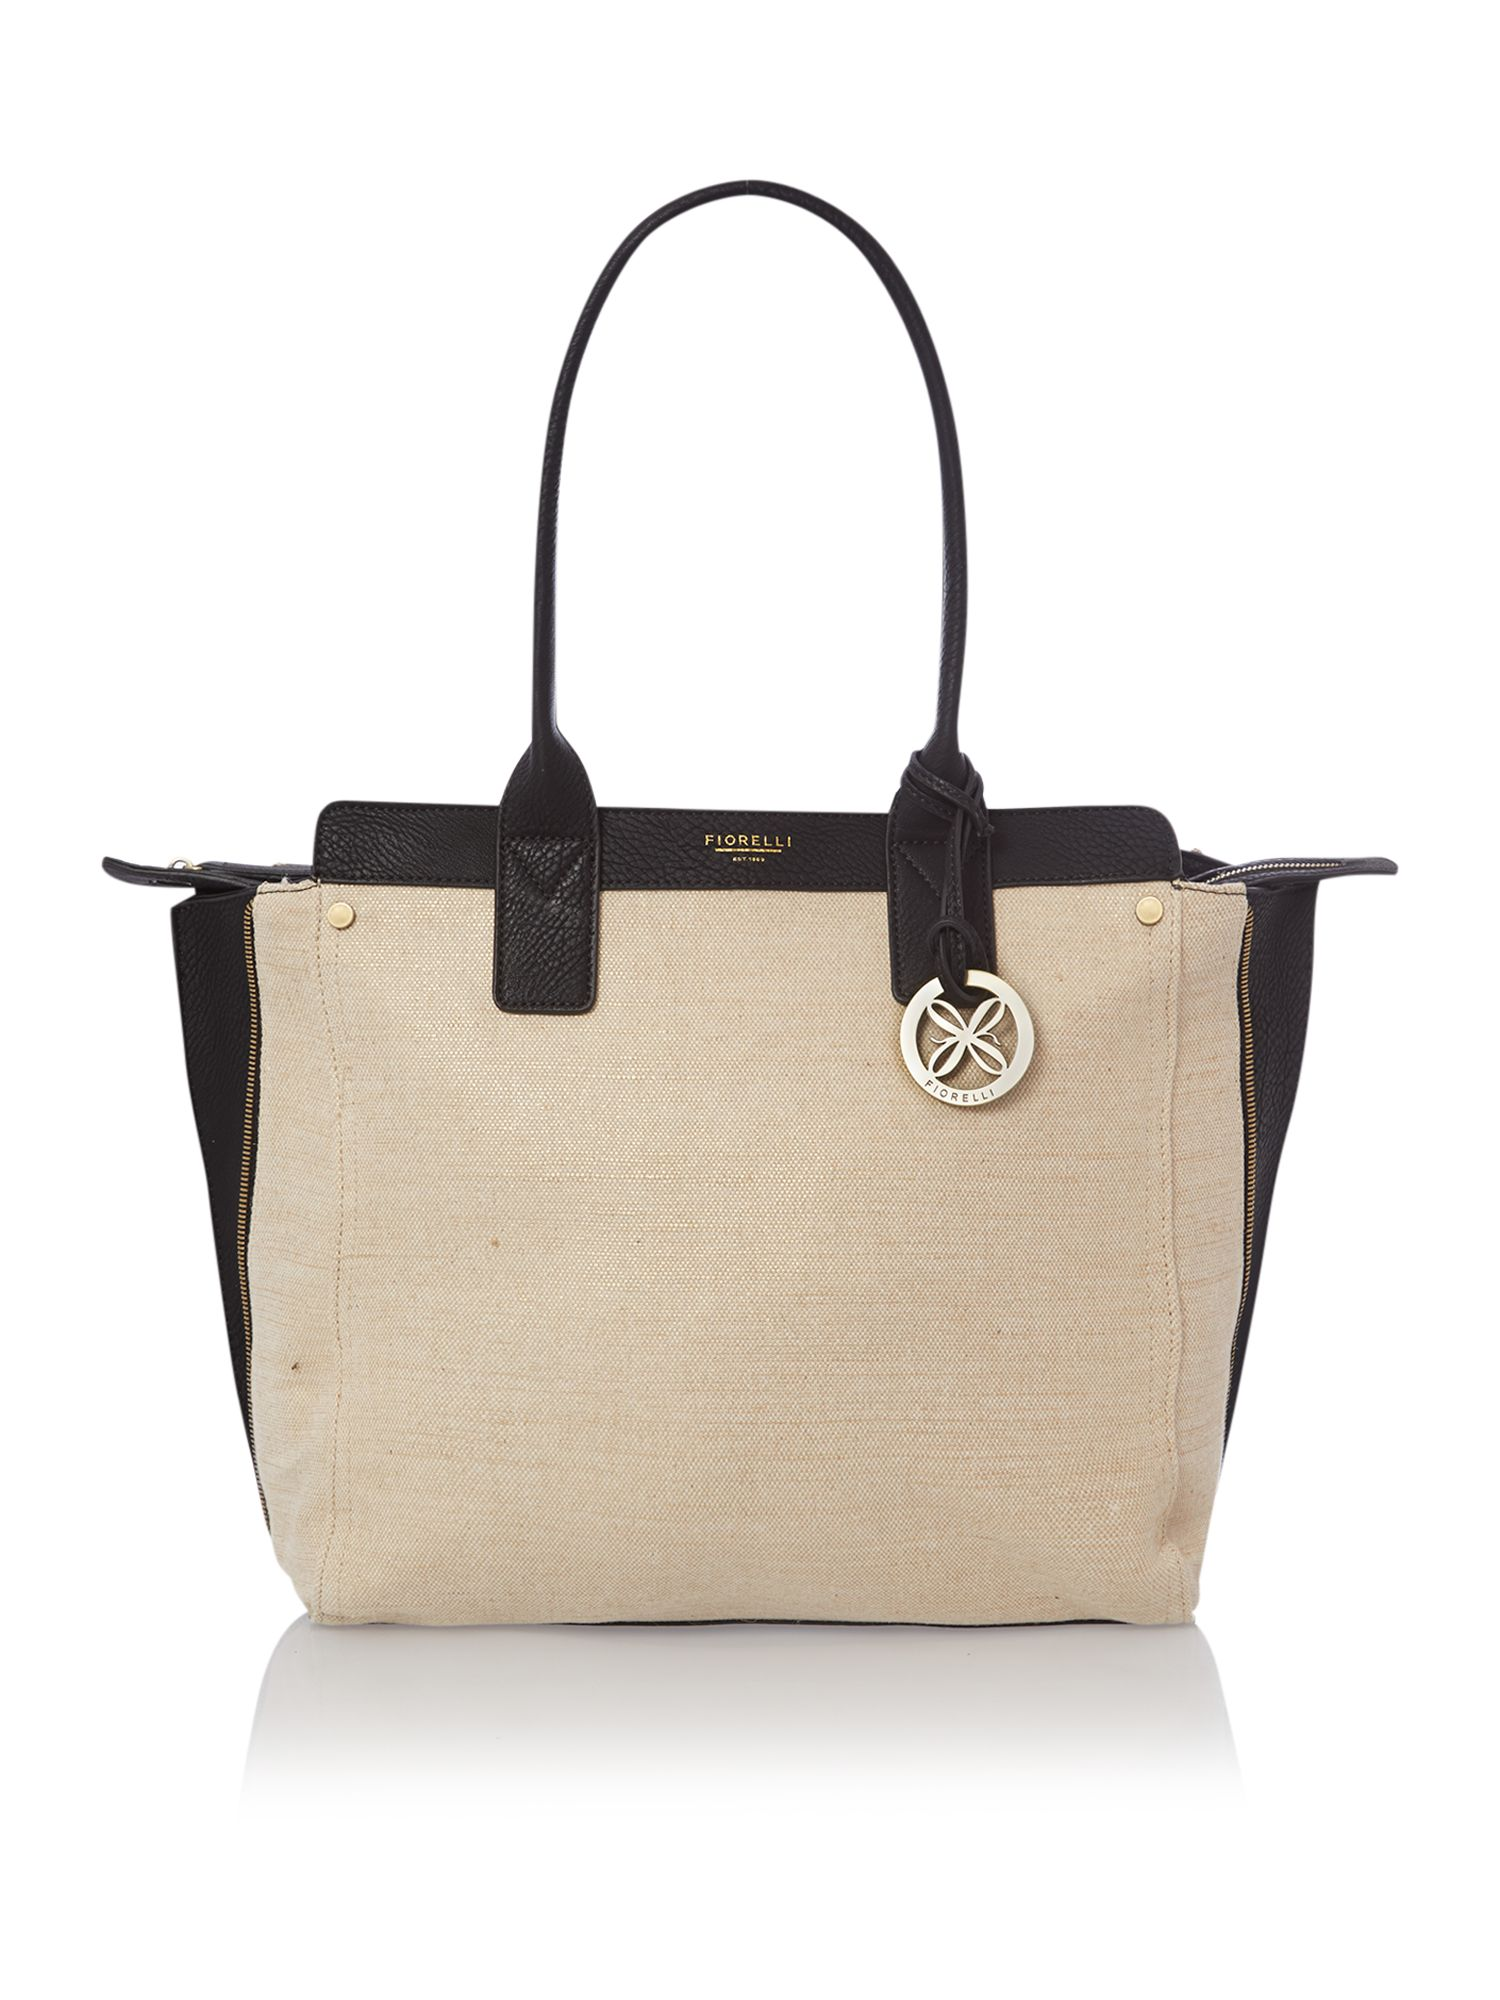 Agyness neutral tote bag